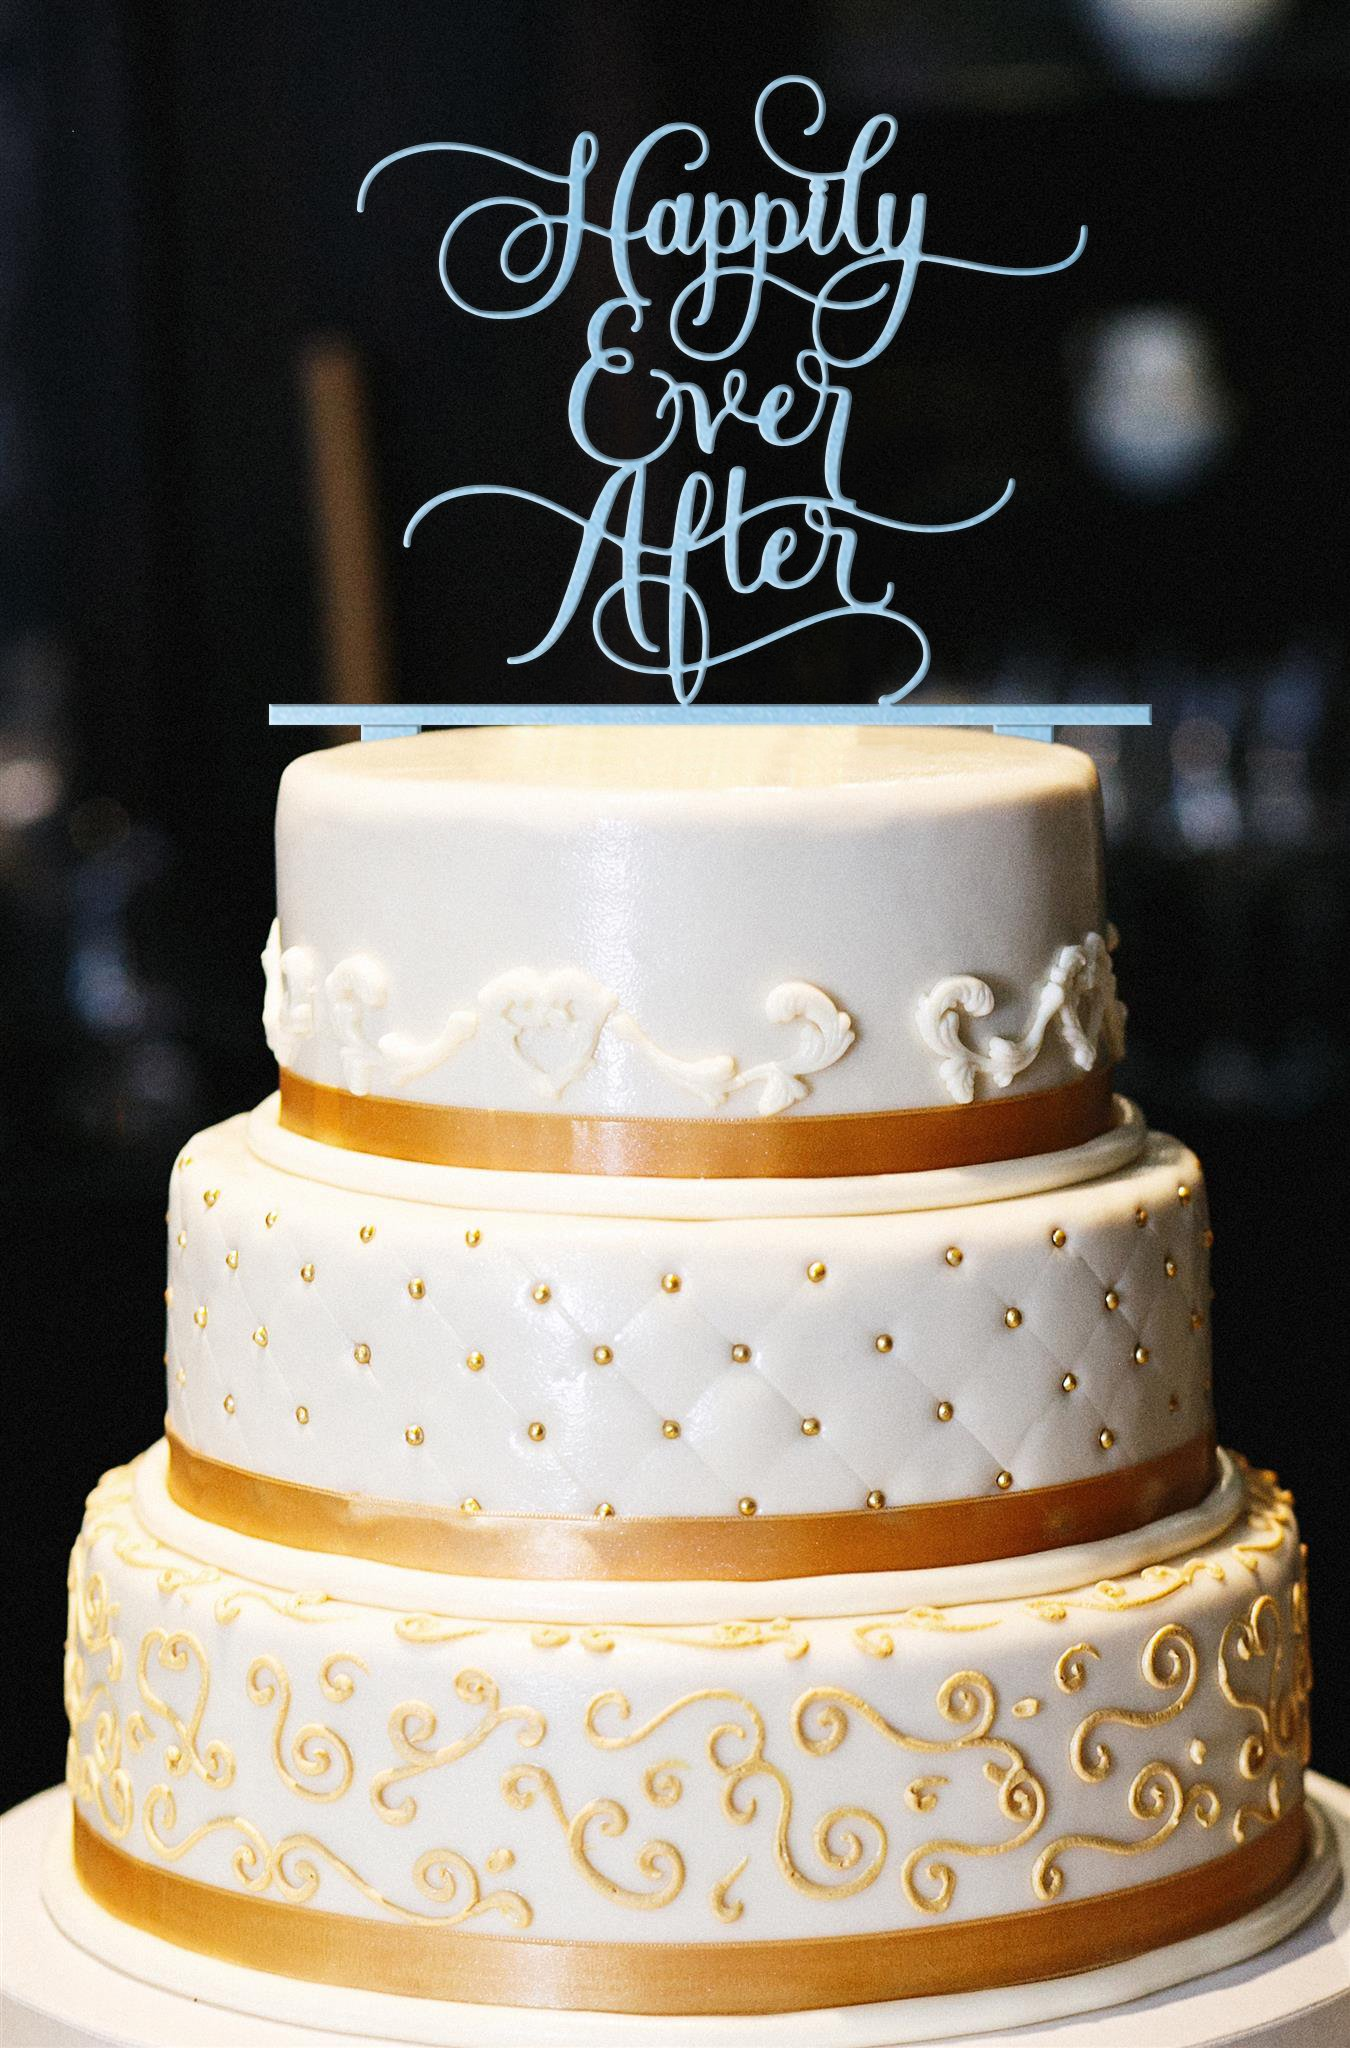 Happily Ever After Wedding Cake Topper, Glitter Wedding Cake Topper, Engagement Cake Topper, Gold Cake Topper, Gold Glitter Cake Topper (14'', Pearl Light Blue)